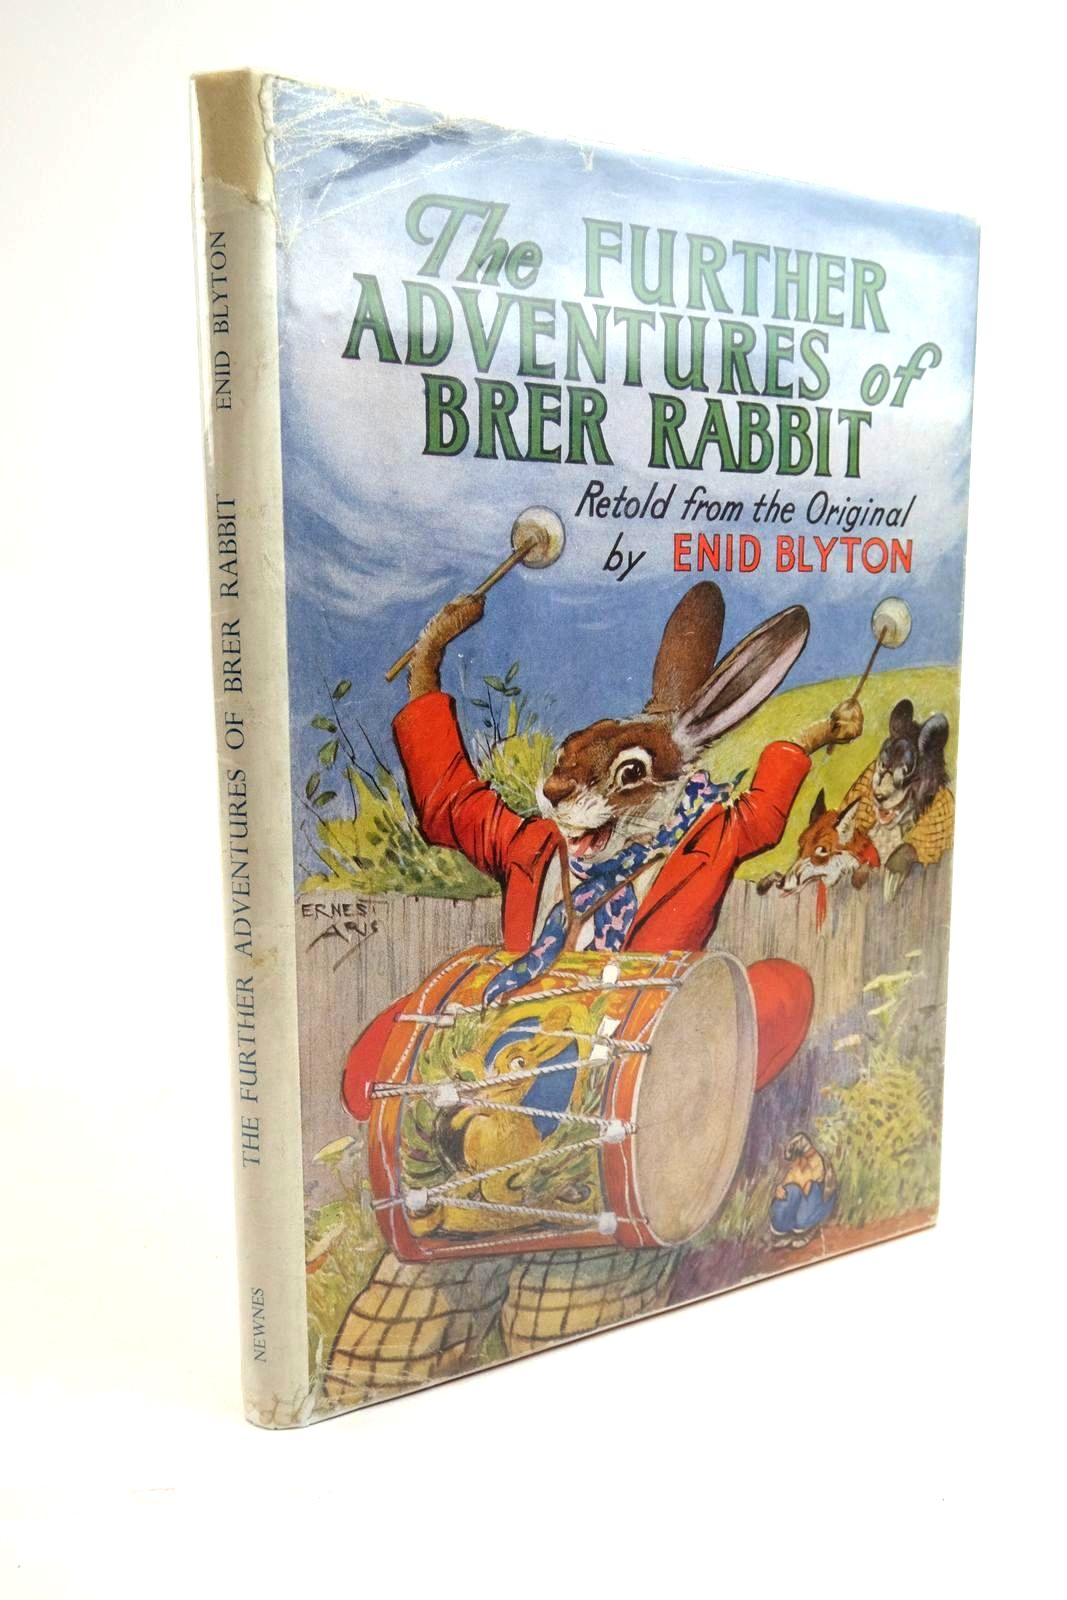 Photo of THE FURTHER ADVENTURES OF BRER RABBIT written by Blyton, Enid illustrated by Aris, Ernest A. published by George Newnes Limited (STOCK CODE: 1321794)  for sale by Stella & Rose's Books